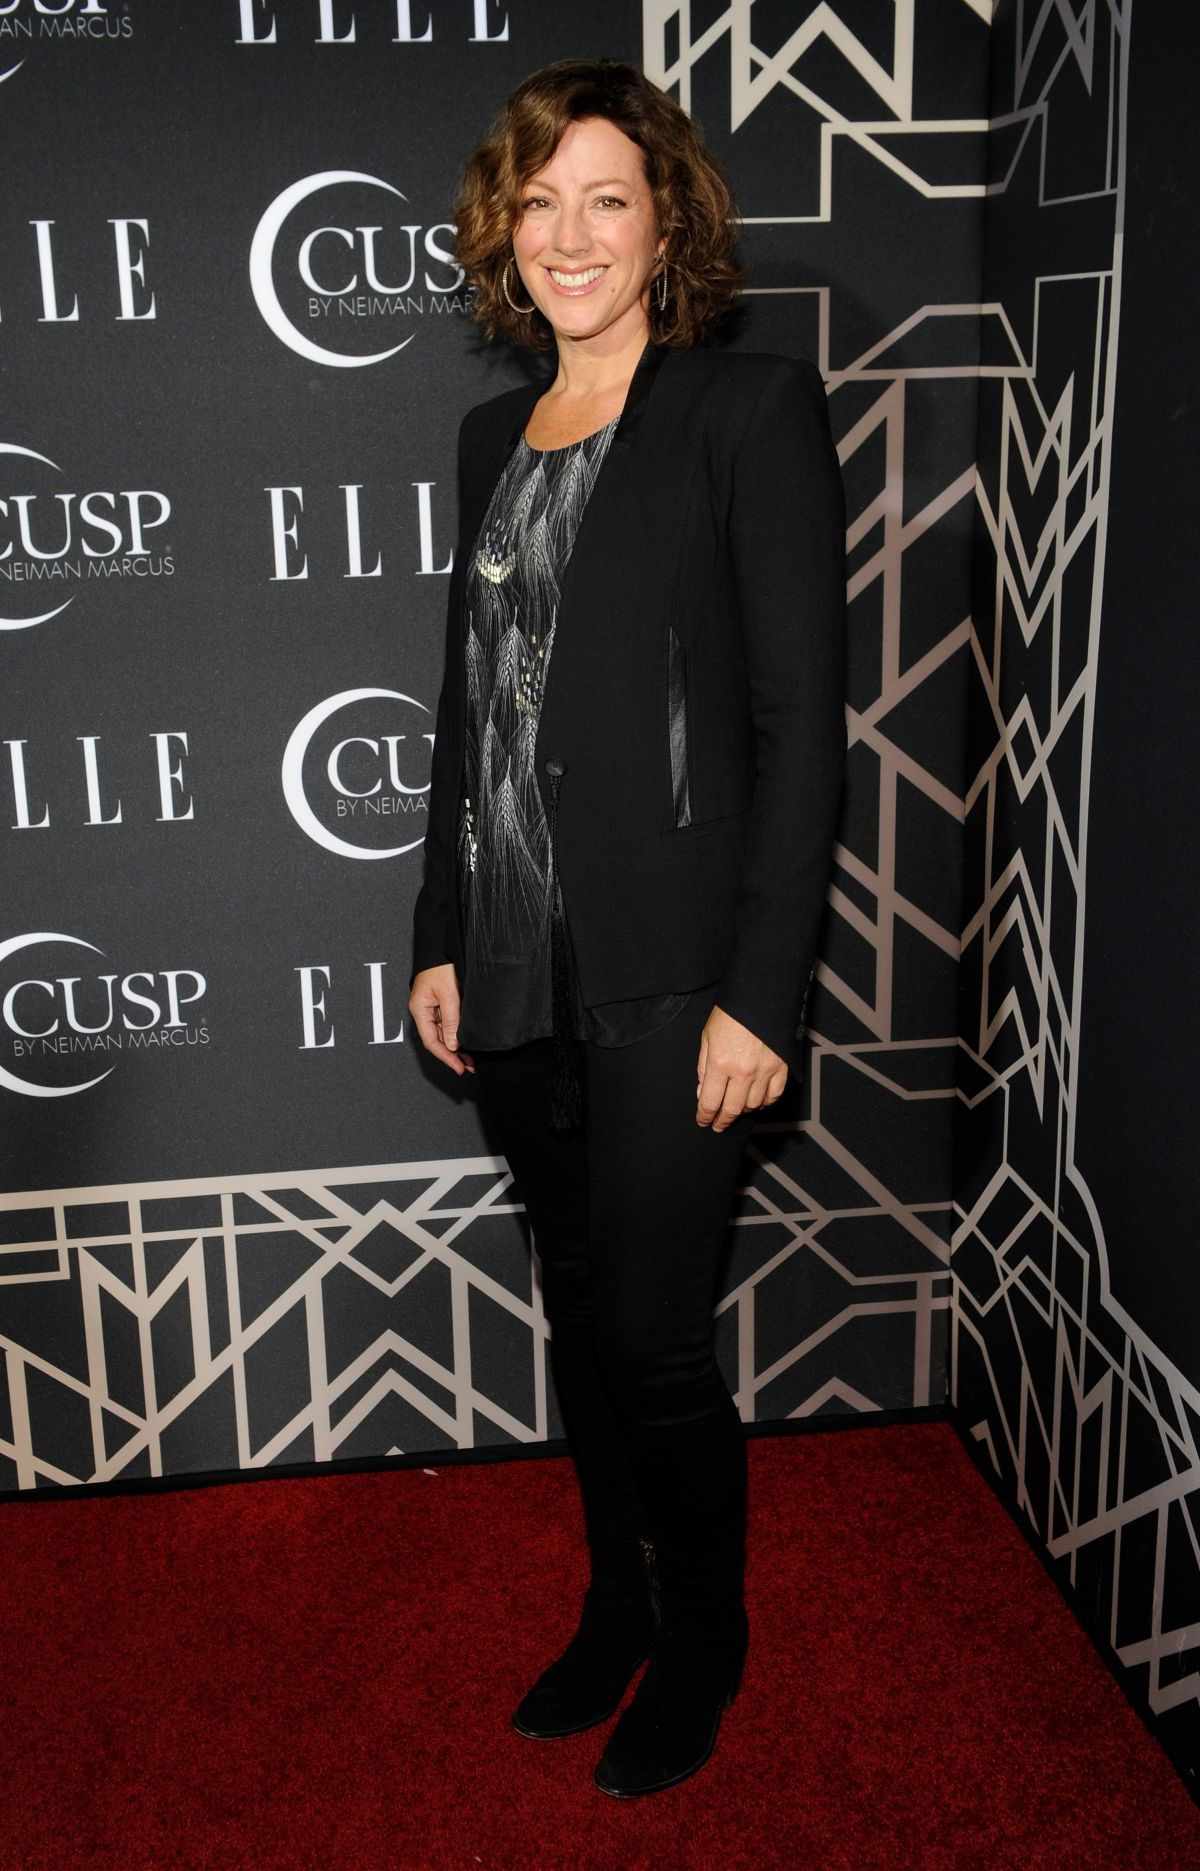 SARAH MCLACHLAN at 2014 Elle Women in Music Celebration in Hollywood